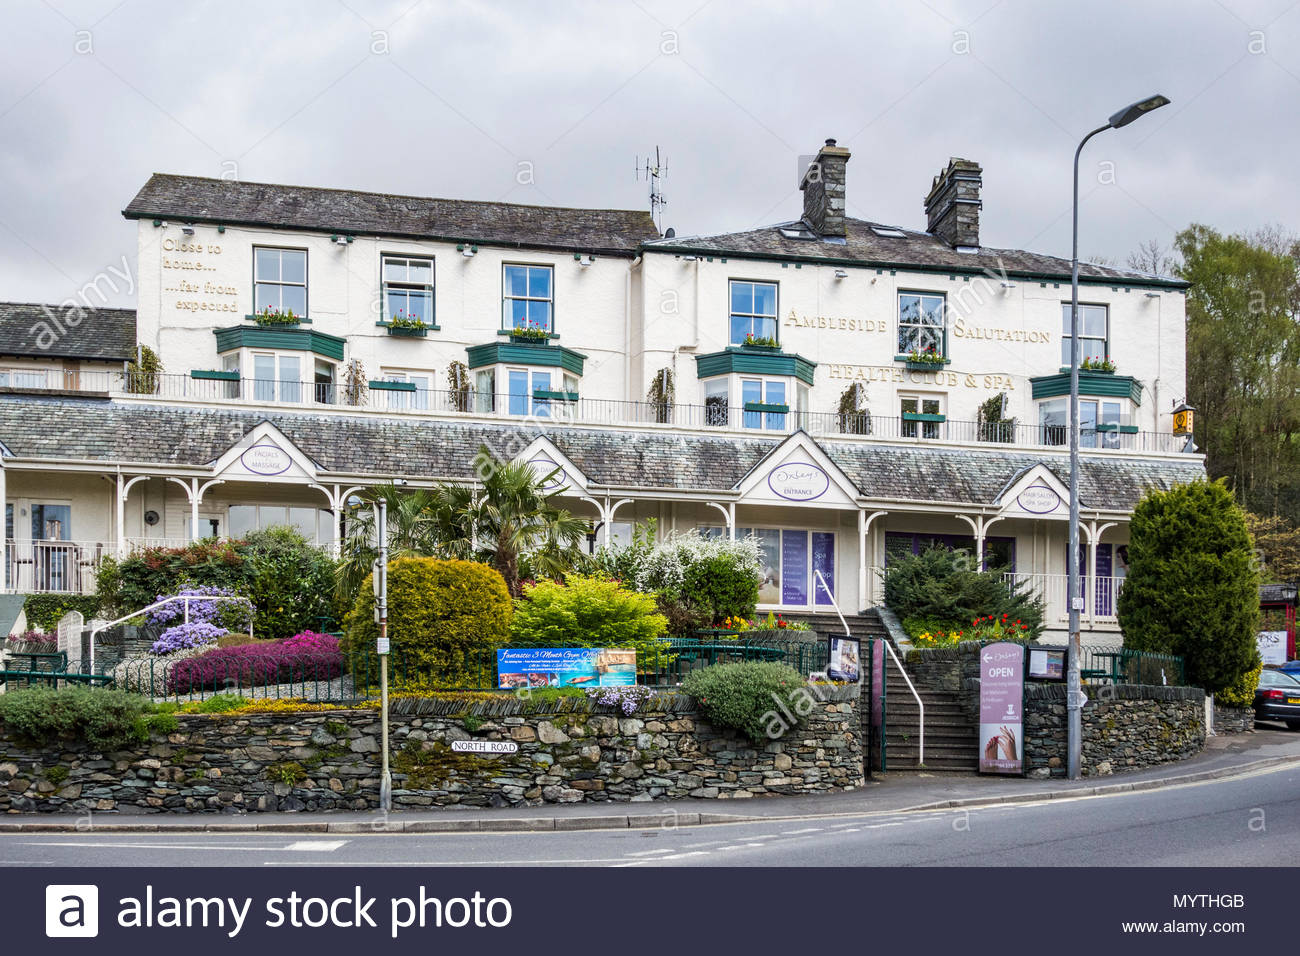 The Ambleside Salutation Health Club and Spa in a prominent position in the town of Ambleside, Cumbria - Stock Image